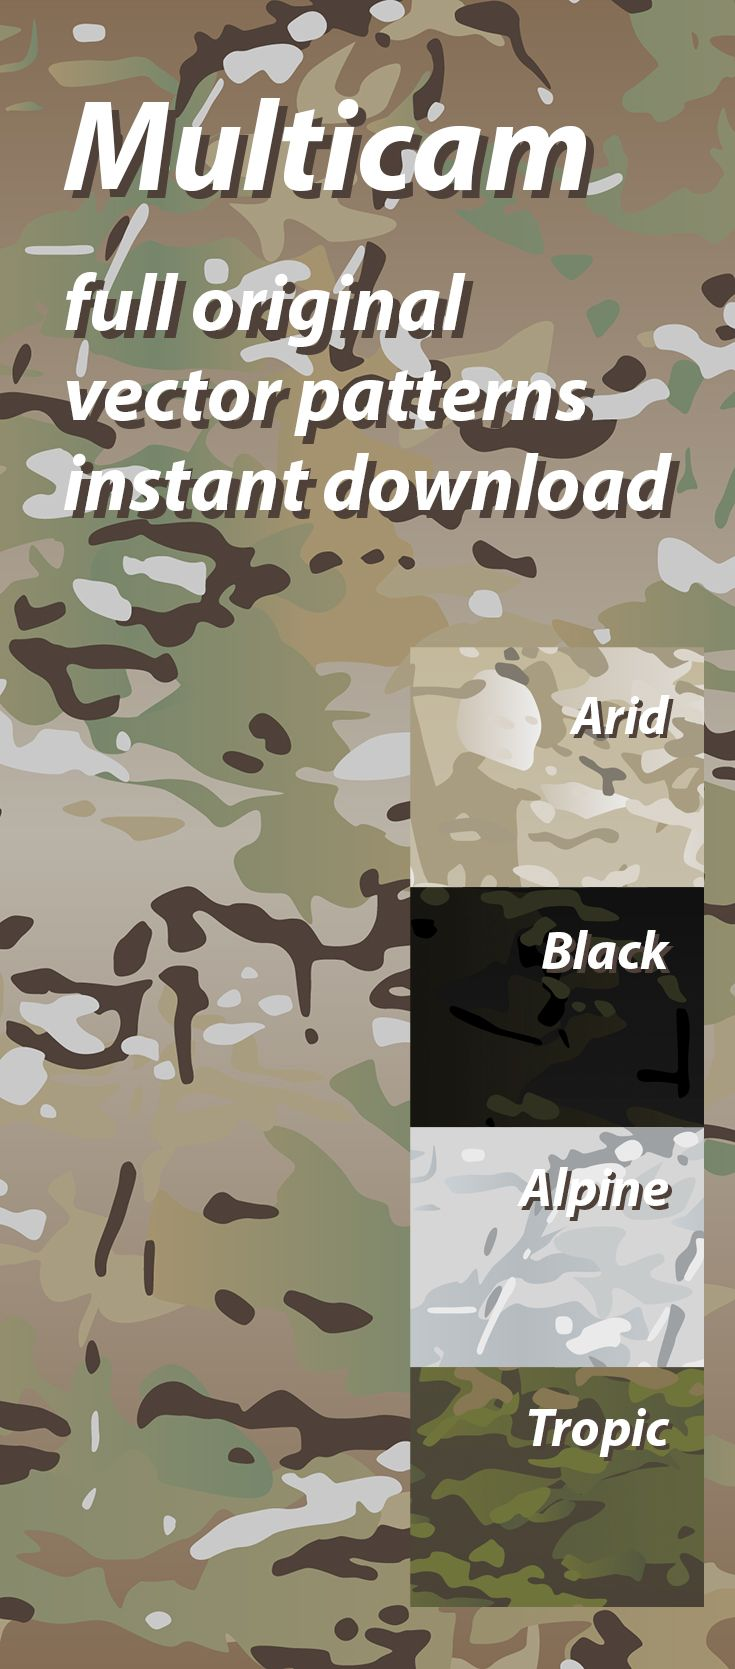 Original Multicam vector camouflage pattern for printing